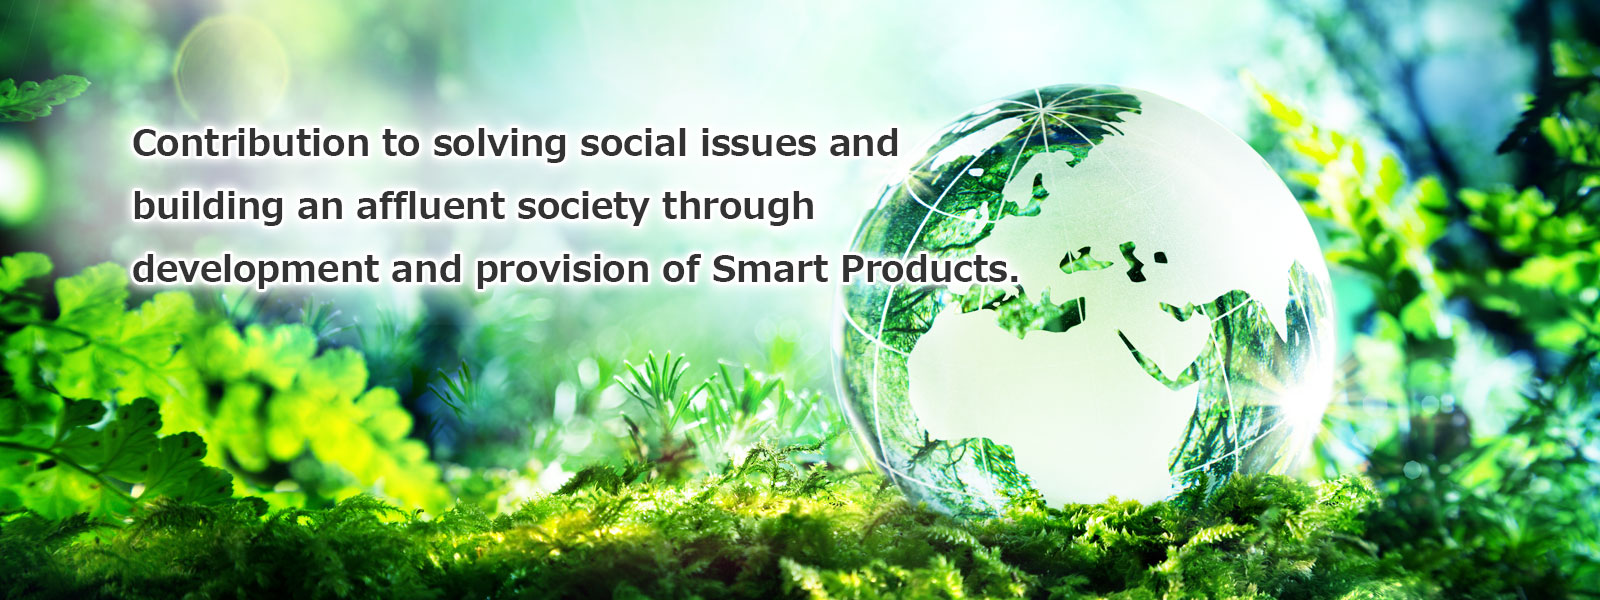 Contribution to solving social issues and building an affluent society through development and provision of Smart Products.